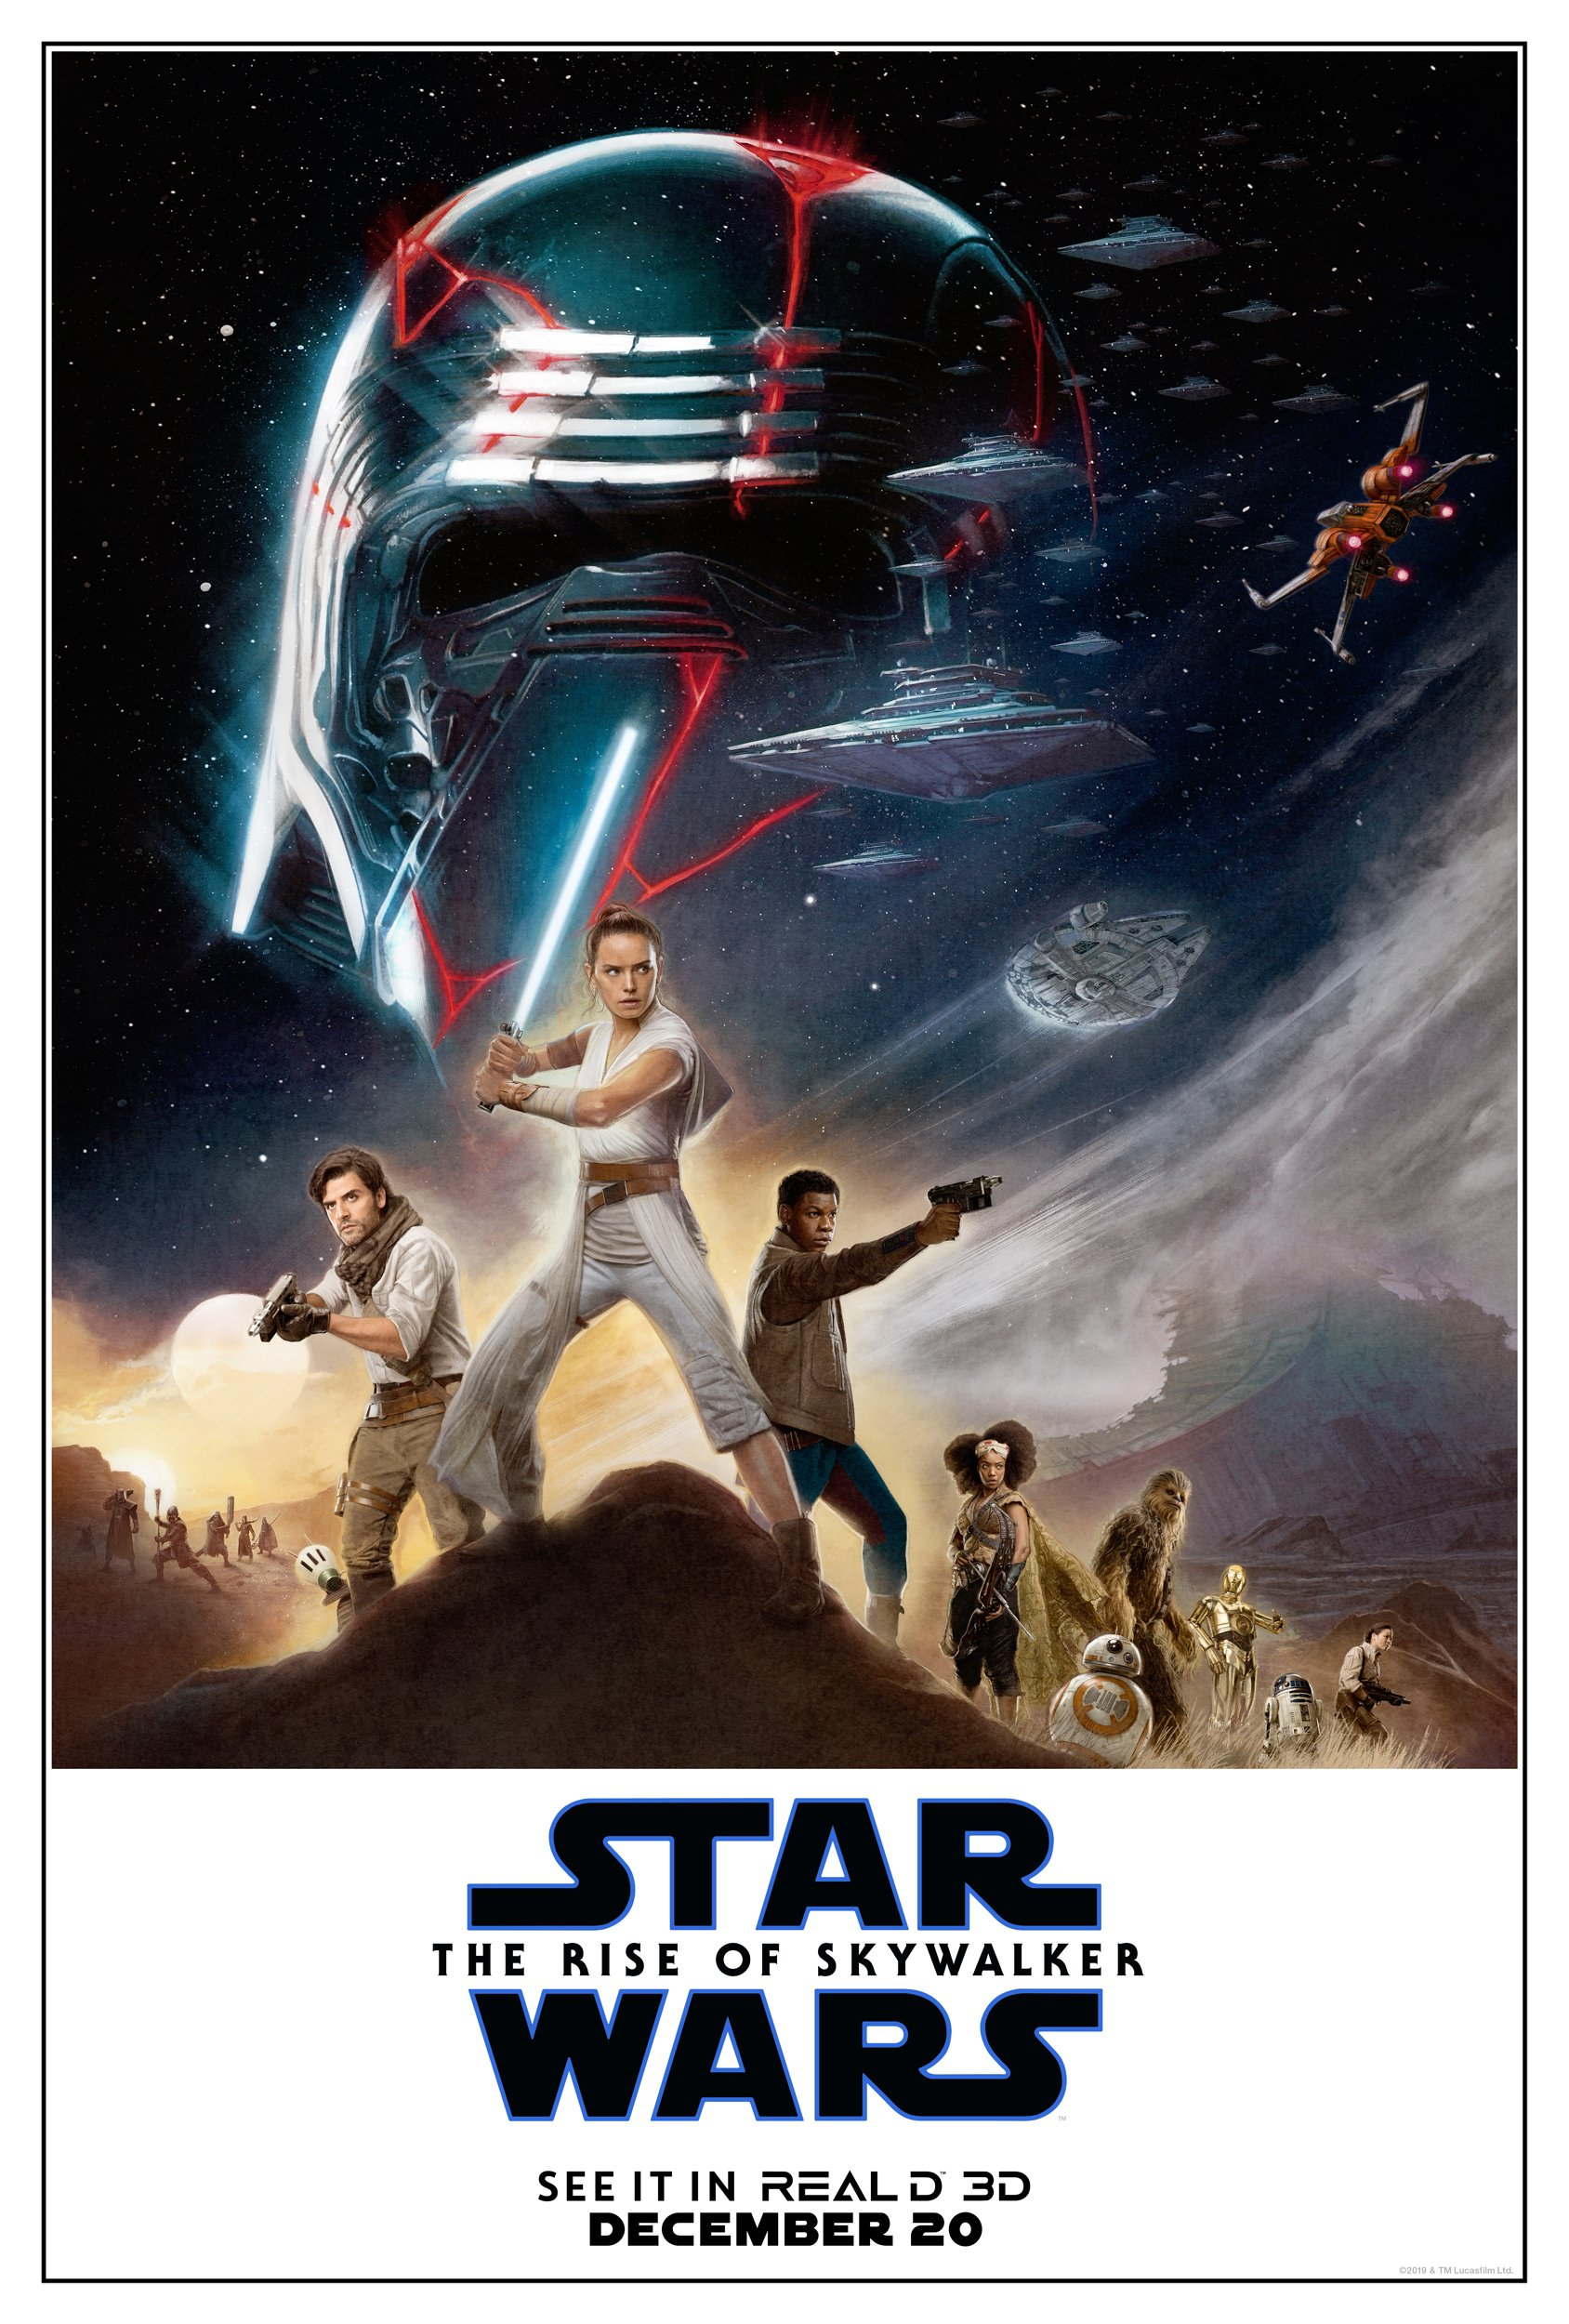 Star Wars Der Aufstieg Skywalkers internationaler Trailer & Poster 2